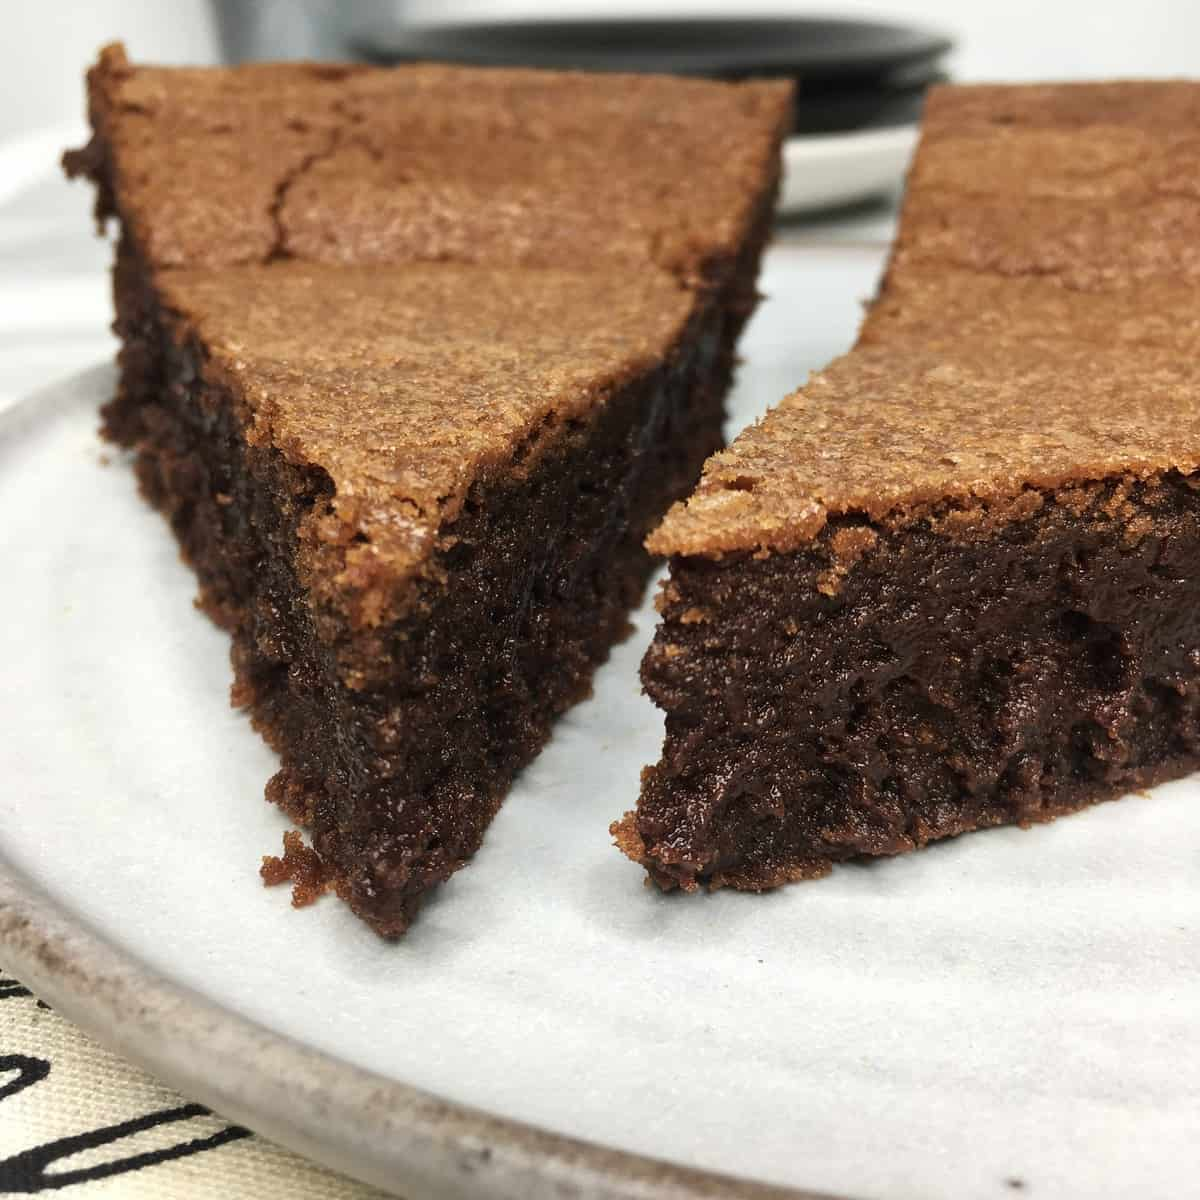 Two slices of Suzy French chocolate cake on a grey plate with other plates on background